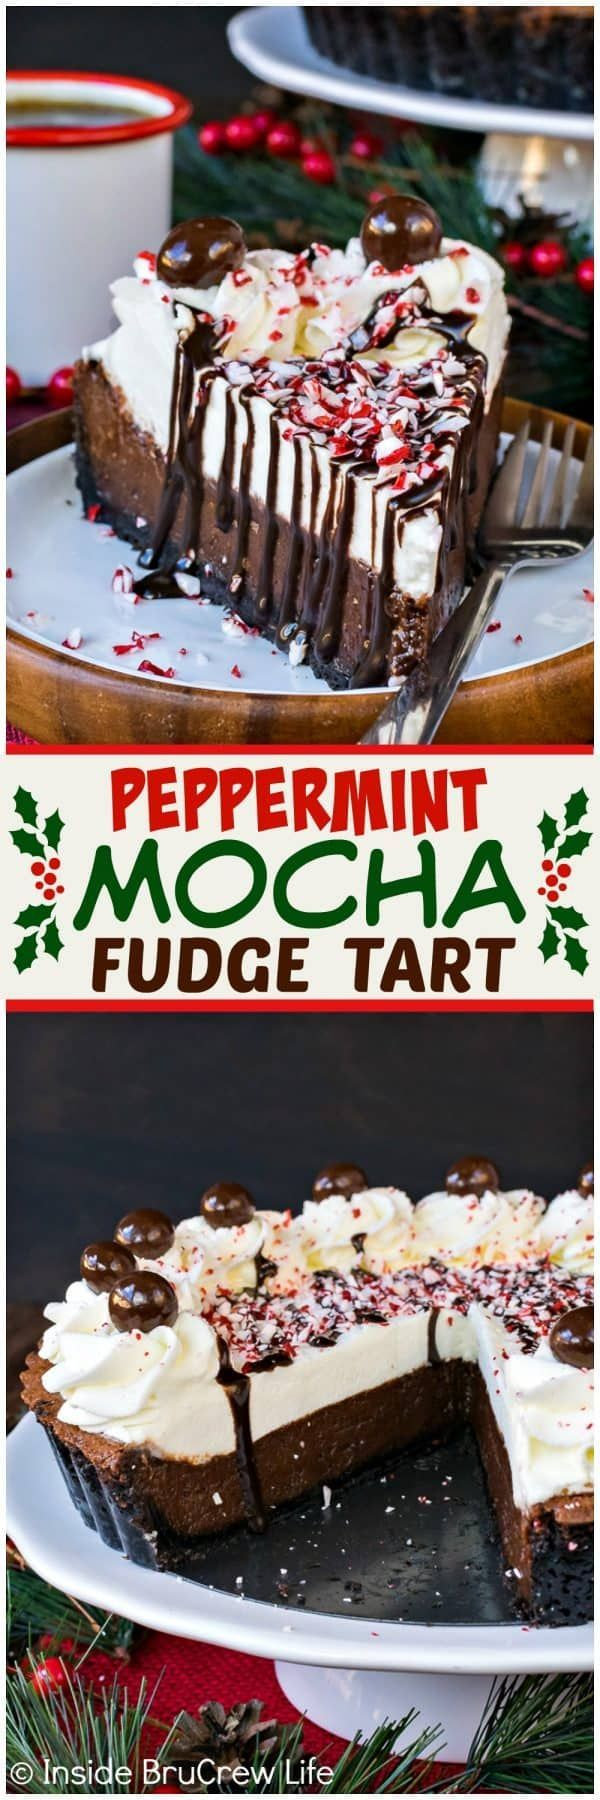 Peppermint Mocha Fudge Tart - layers of creamy chocolate and homemade whipped cream make this an impressive dessert to serve for Christmas. Easy recipe for holiday parties!